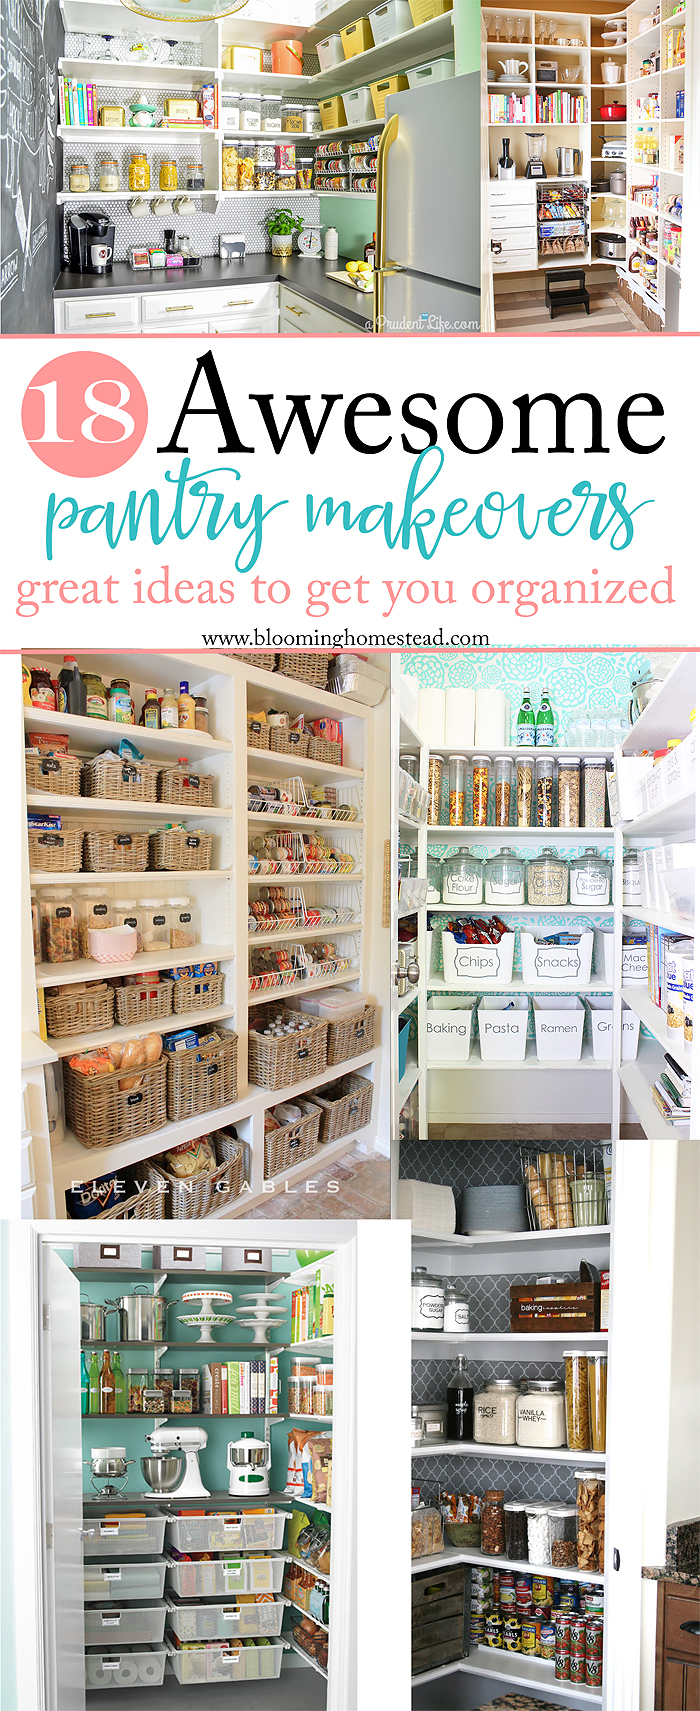 Looking to get organized? Check out this collection of 18 Awesome Pantry Makeover Ideas